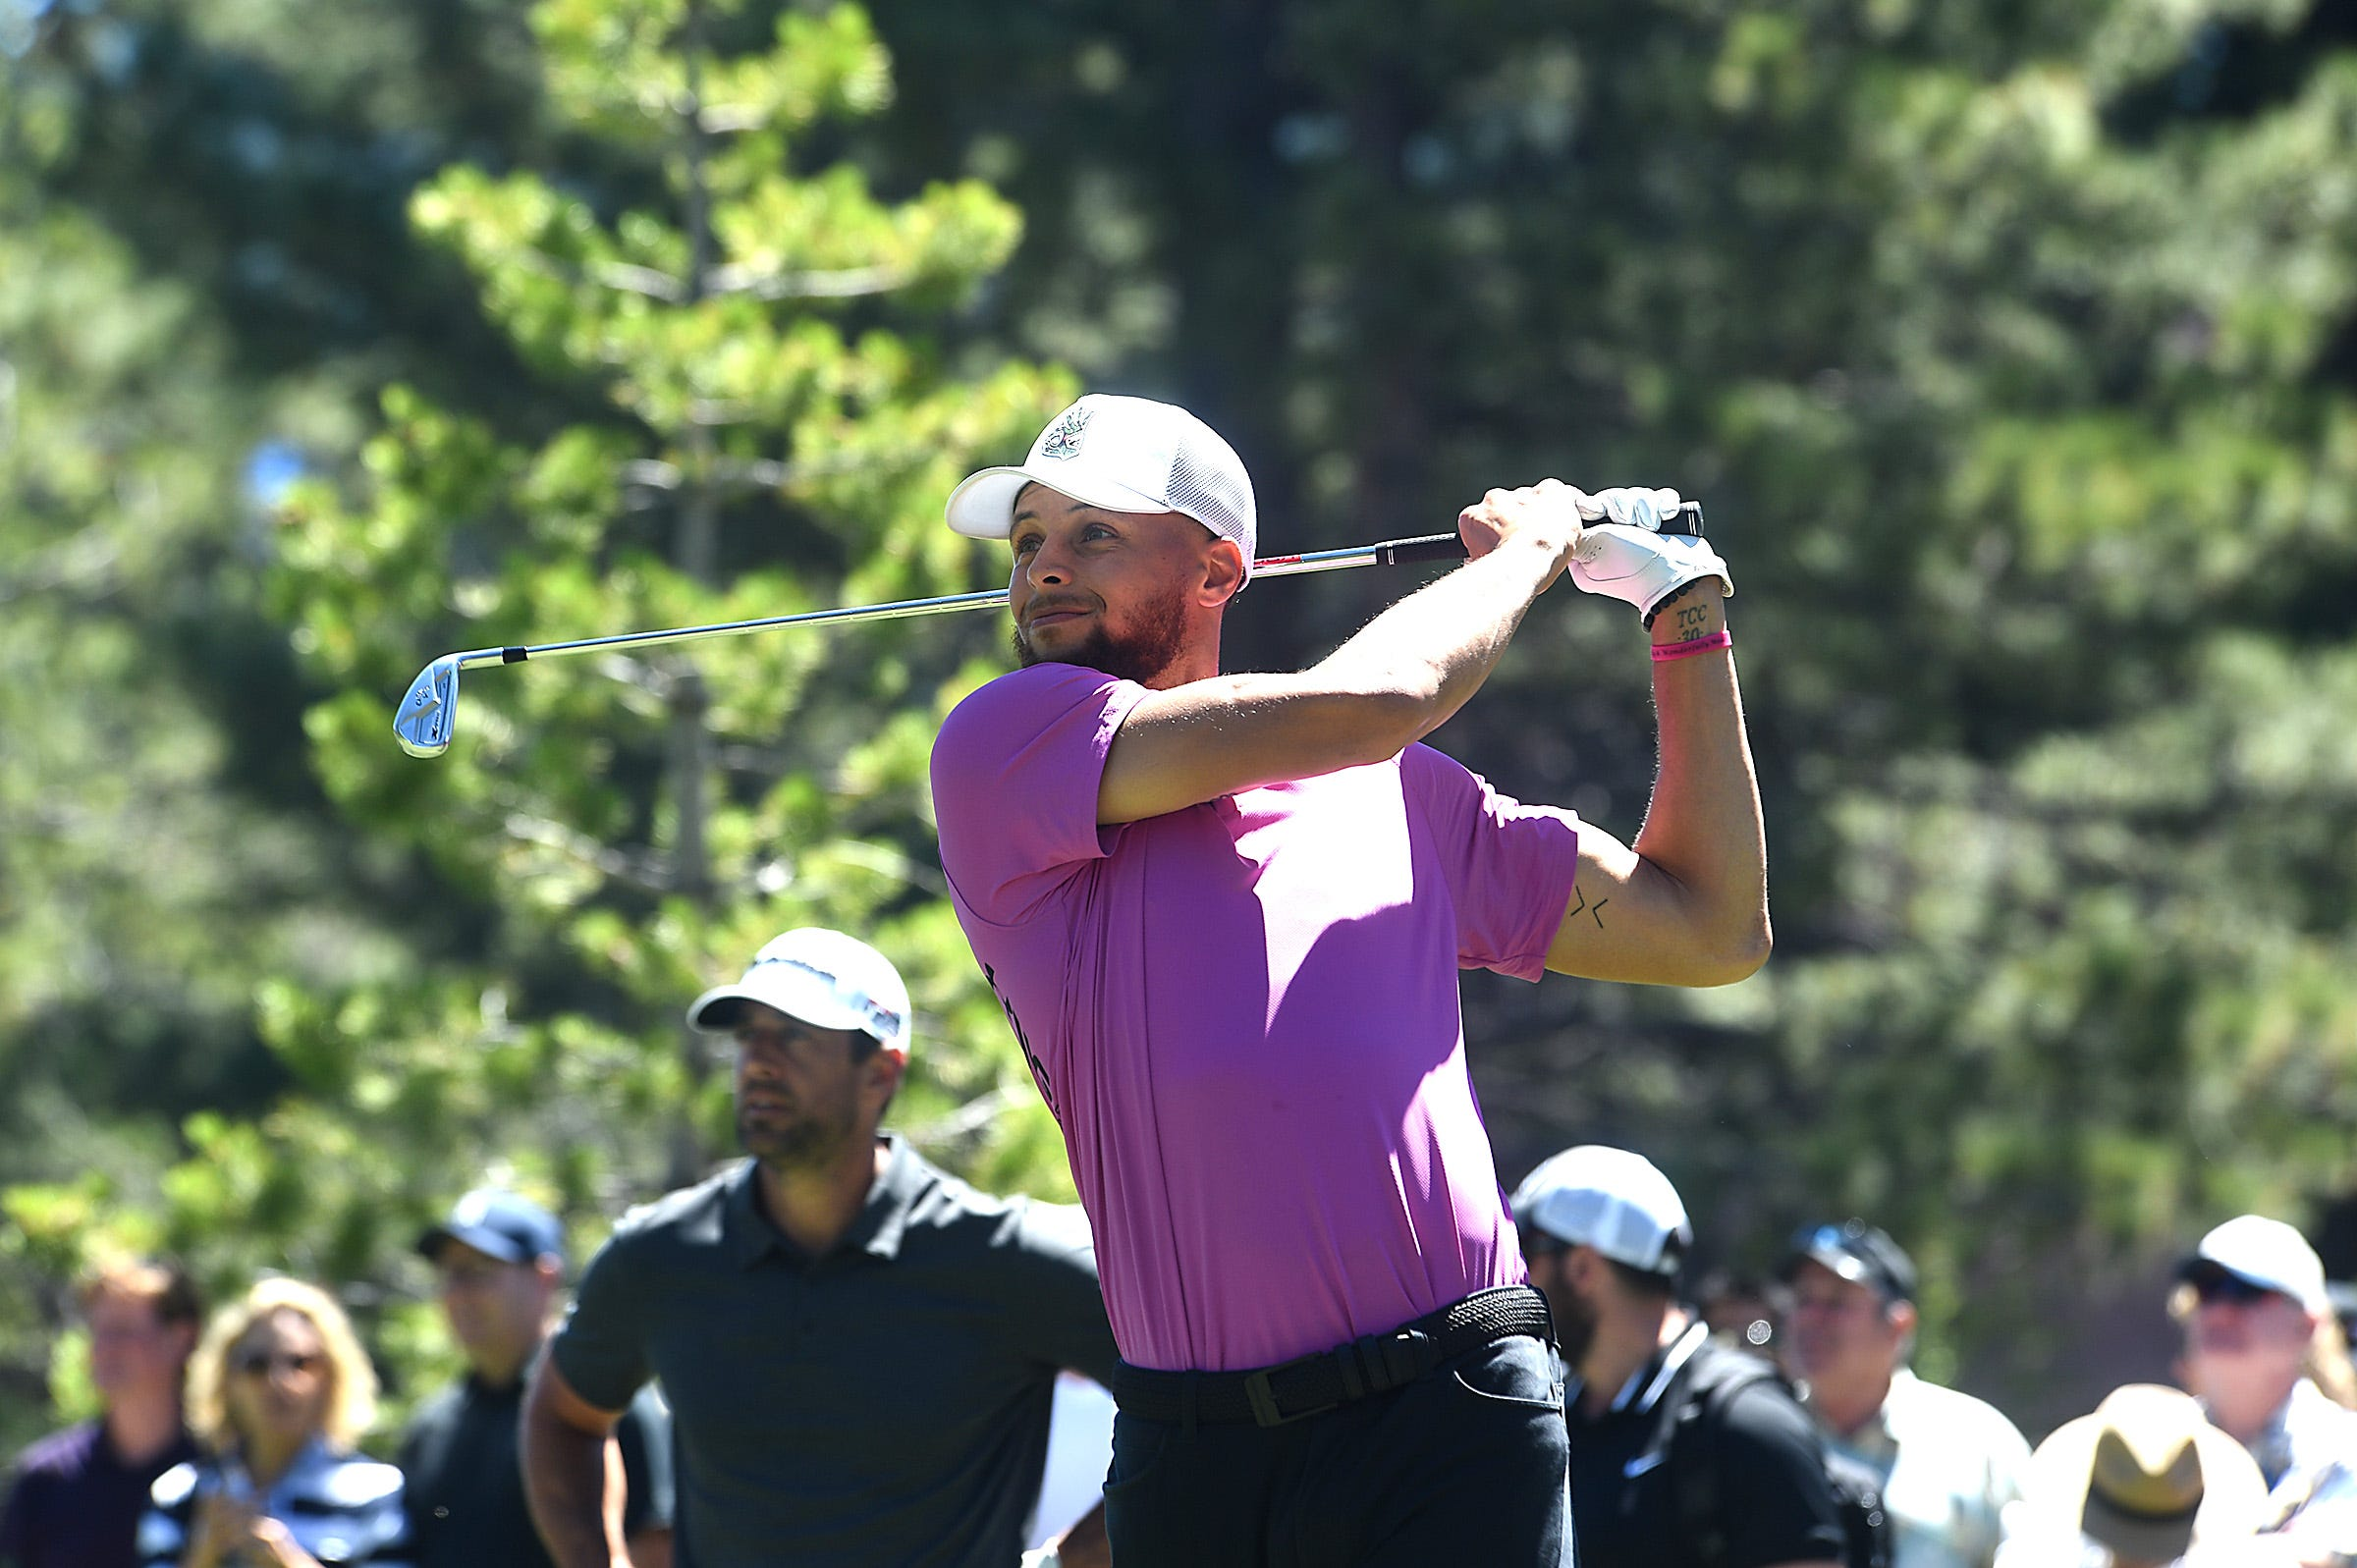 NBA star Steph Curry joins NBC's Ryder Cup coverage in ...